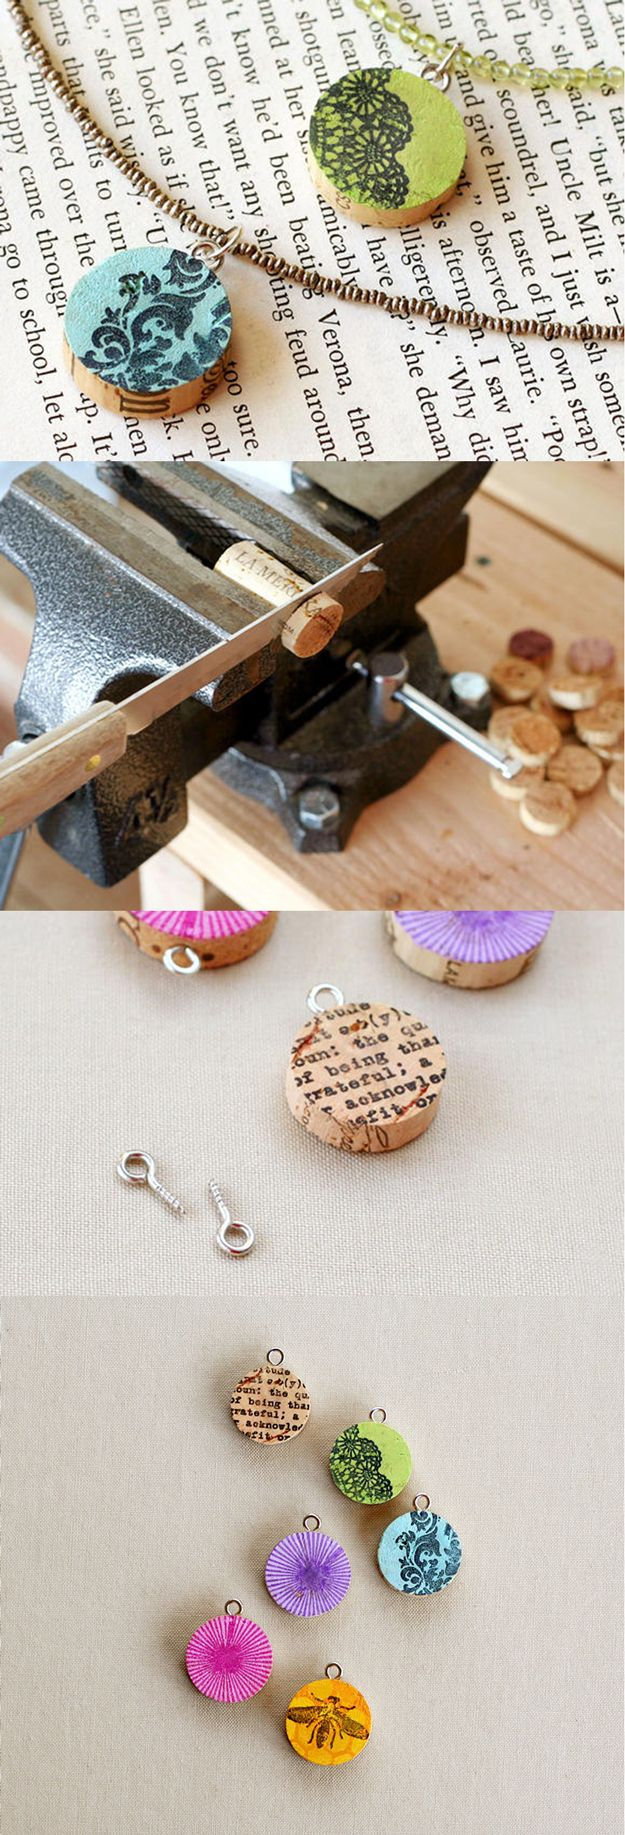 43 more diy wine cork crafts ideas pinterest easy diy crafts wine cork crafts and fun projects - Wine cork diy decorating projects ...